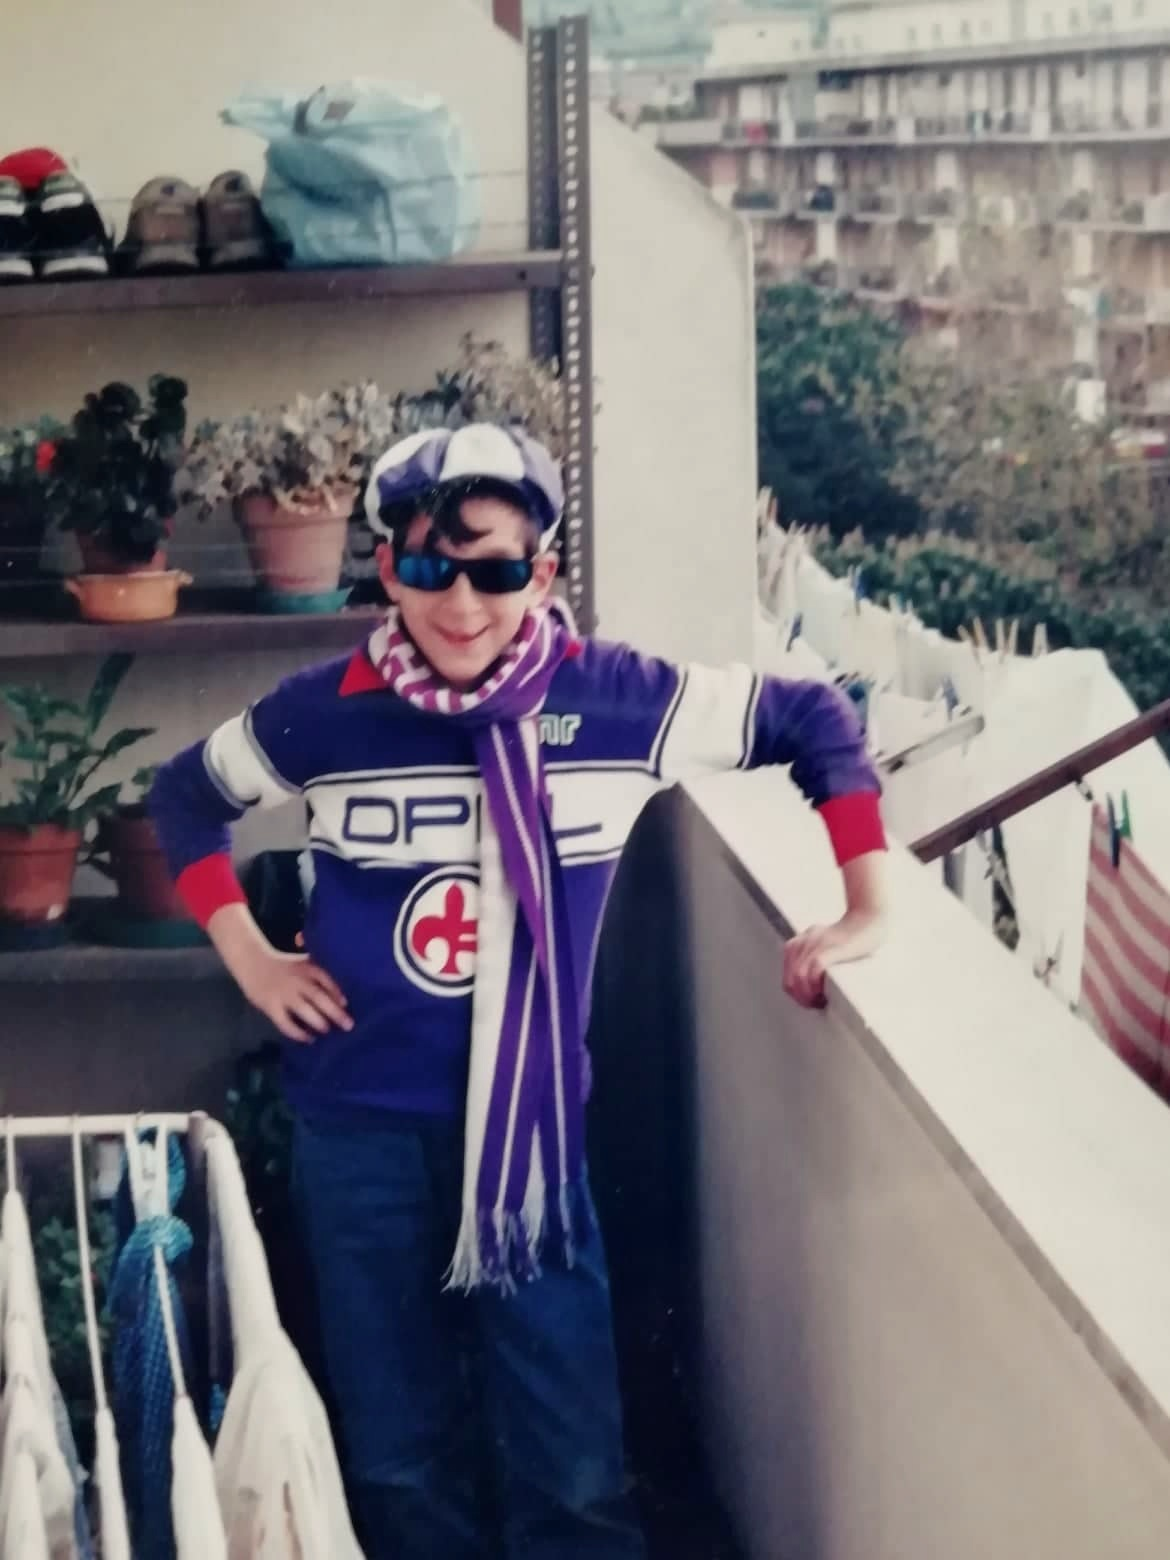 Myself as a young, Fiorentina fan